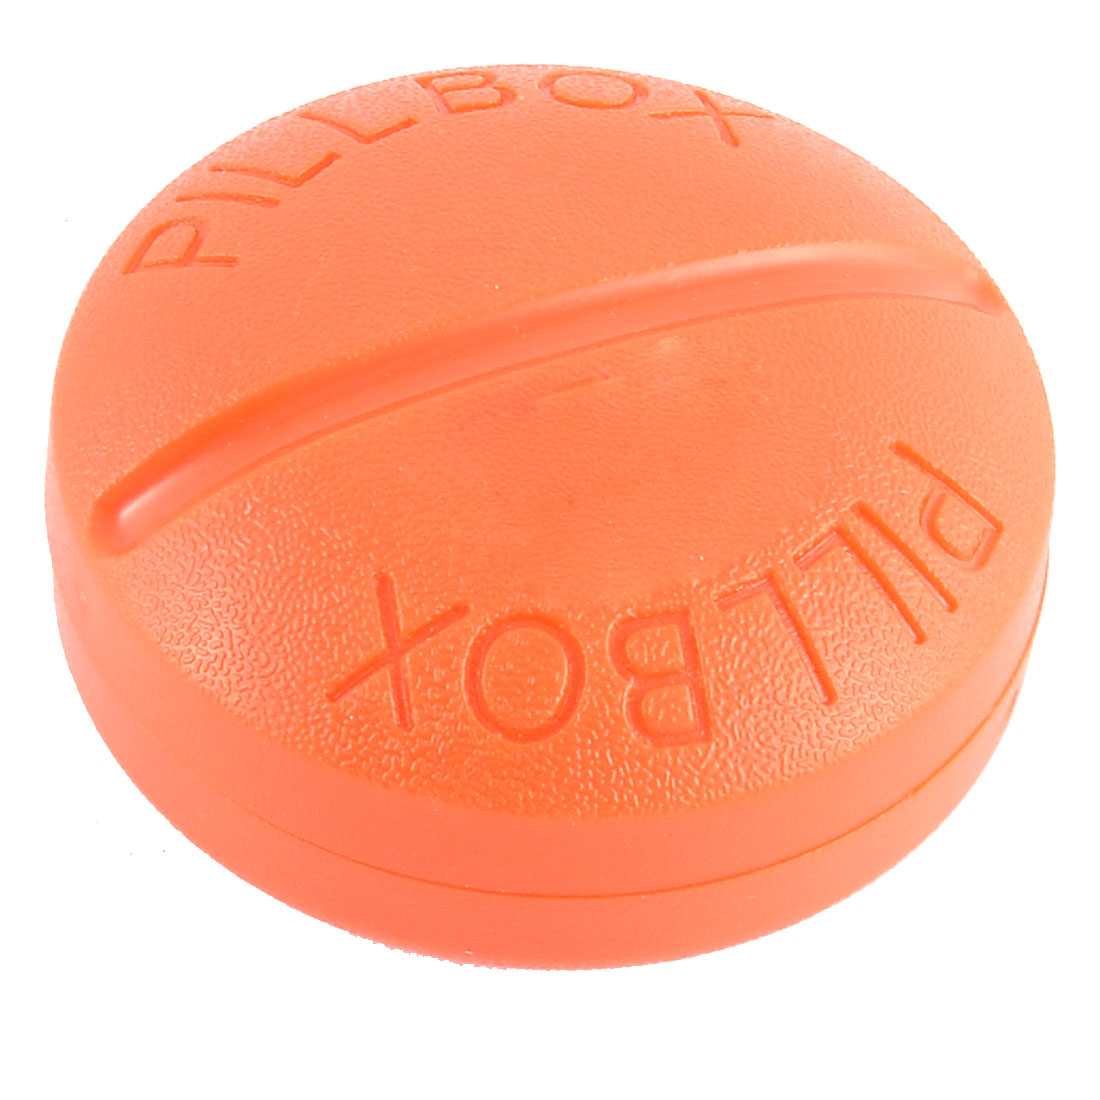 UXCELL Plastic Round Shaped Daily Pill Medicine Storage Case Box Container Orange(China (Mainland))